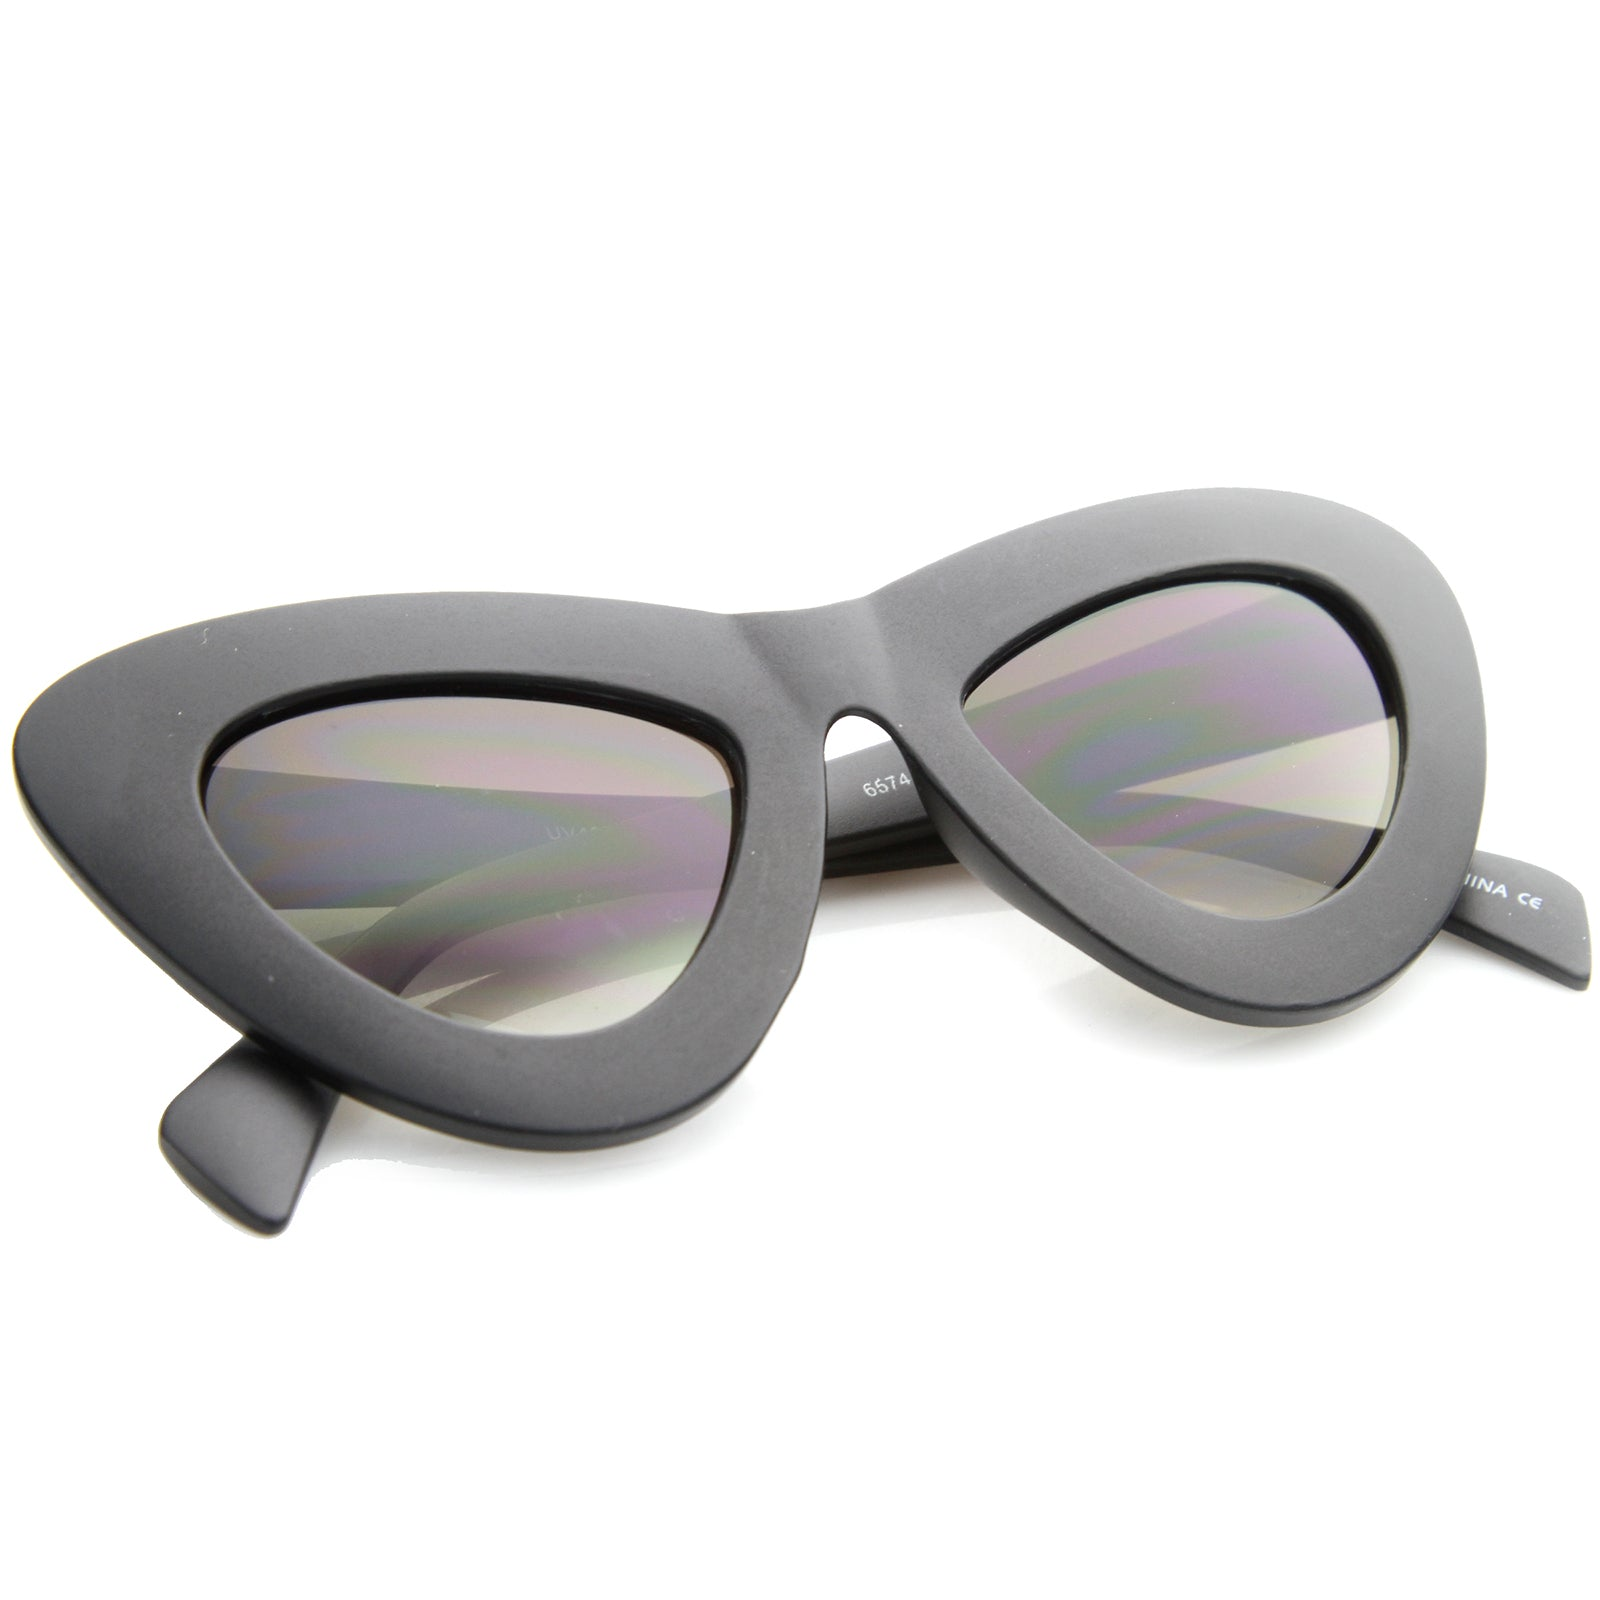 Womens Cat Eye Sunglasses With UV400 Protected Composite Lens - sunglass.la - 16